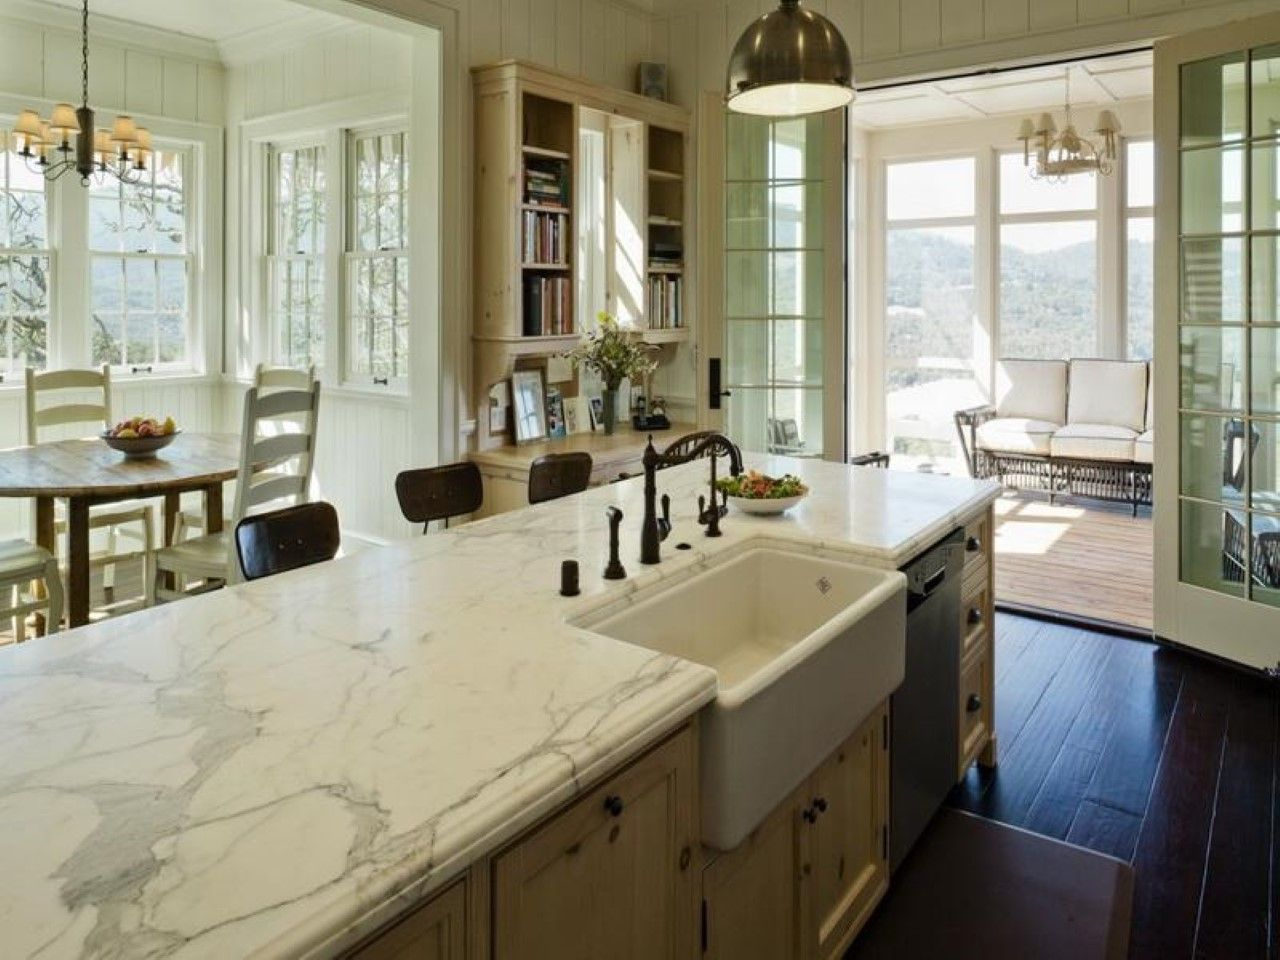 Rustic Farmhouse Kitchen White Marble Countertop And Apron Sink In Classy Farmhouse Kitchen Feat